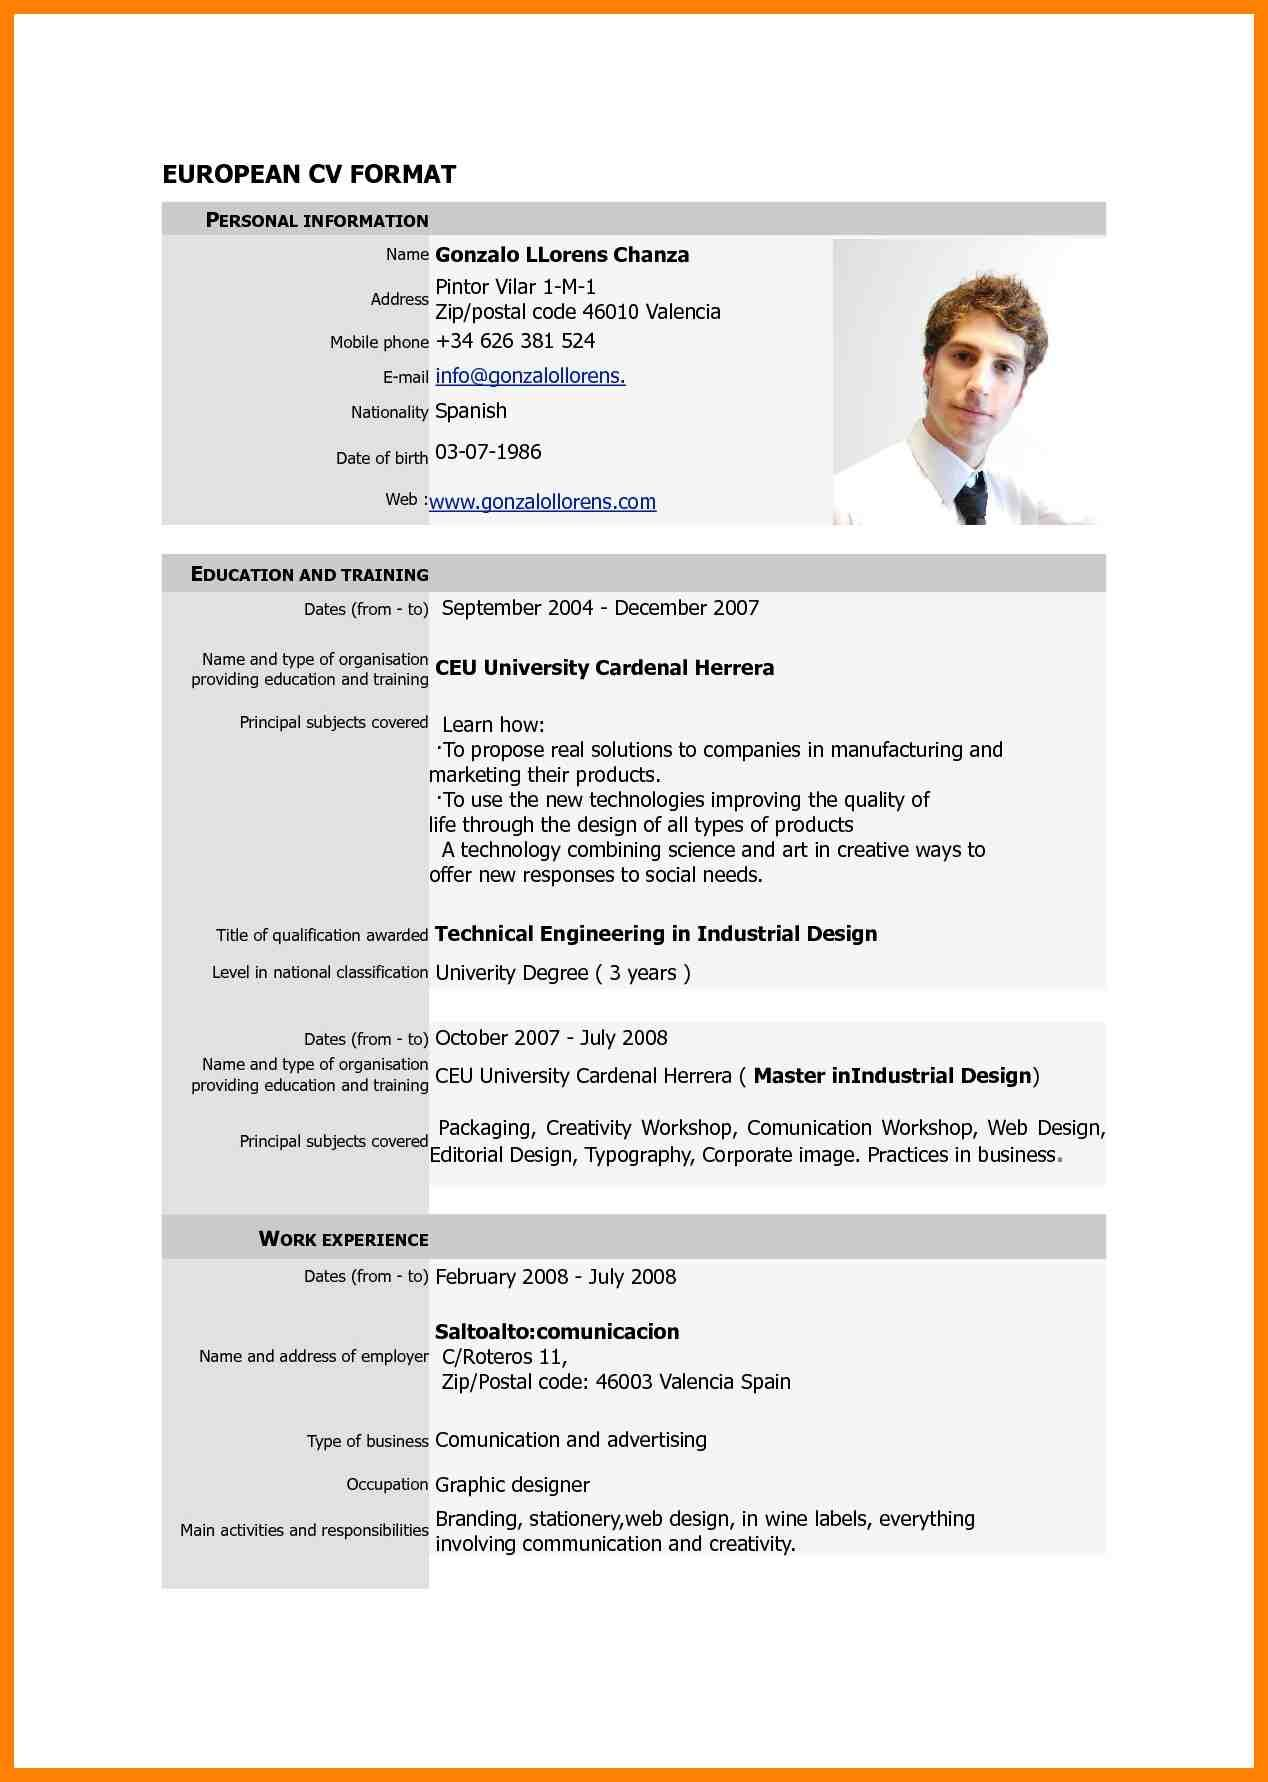 Resume Doc Format 9 Standard Cv Format Doc Cv For Teaching Latest Cv Format Doc 2017